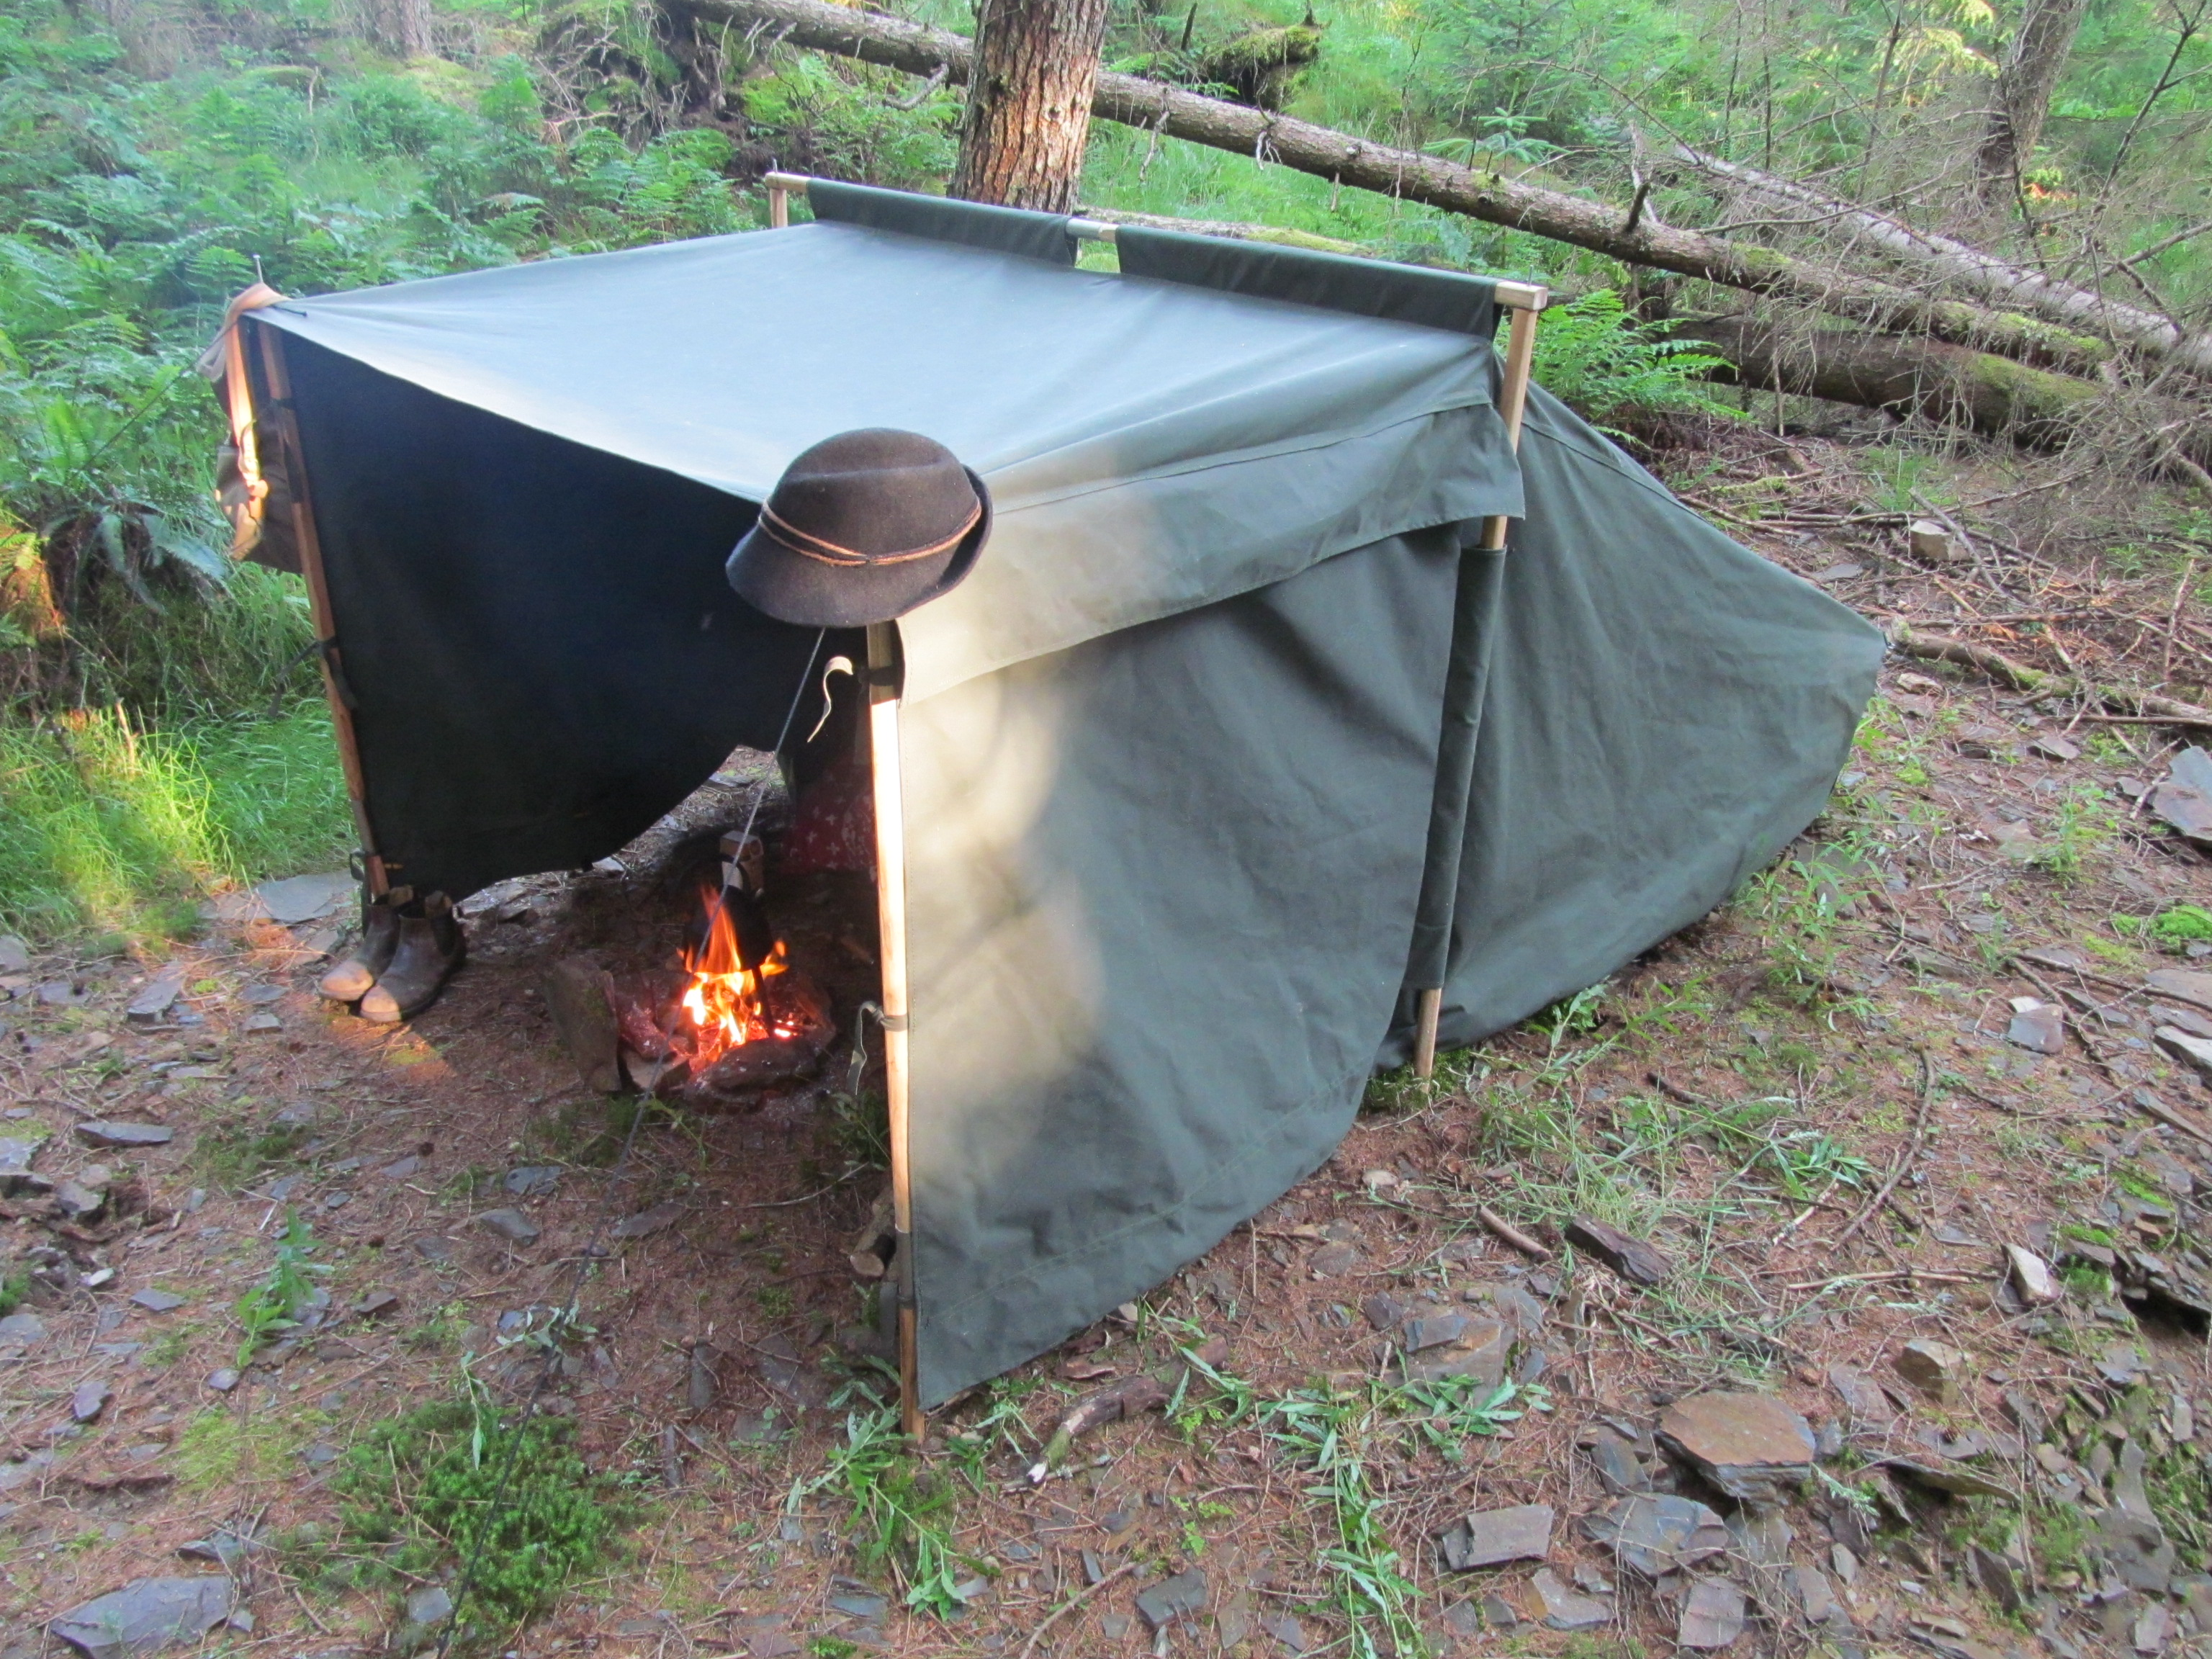 The C&fire Tent on a rocky beach on Loch Ness - secured simply to the canoes to the front and a log to the rear - no pegs needed. & The Campfire Tent on a rocky beach on Loch Ness - secured simply to ...